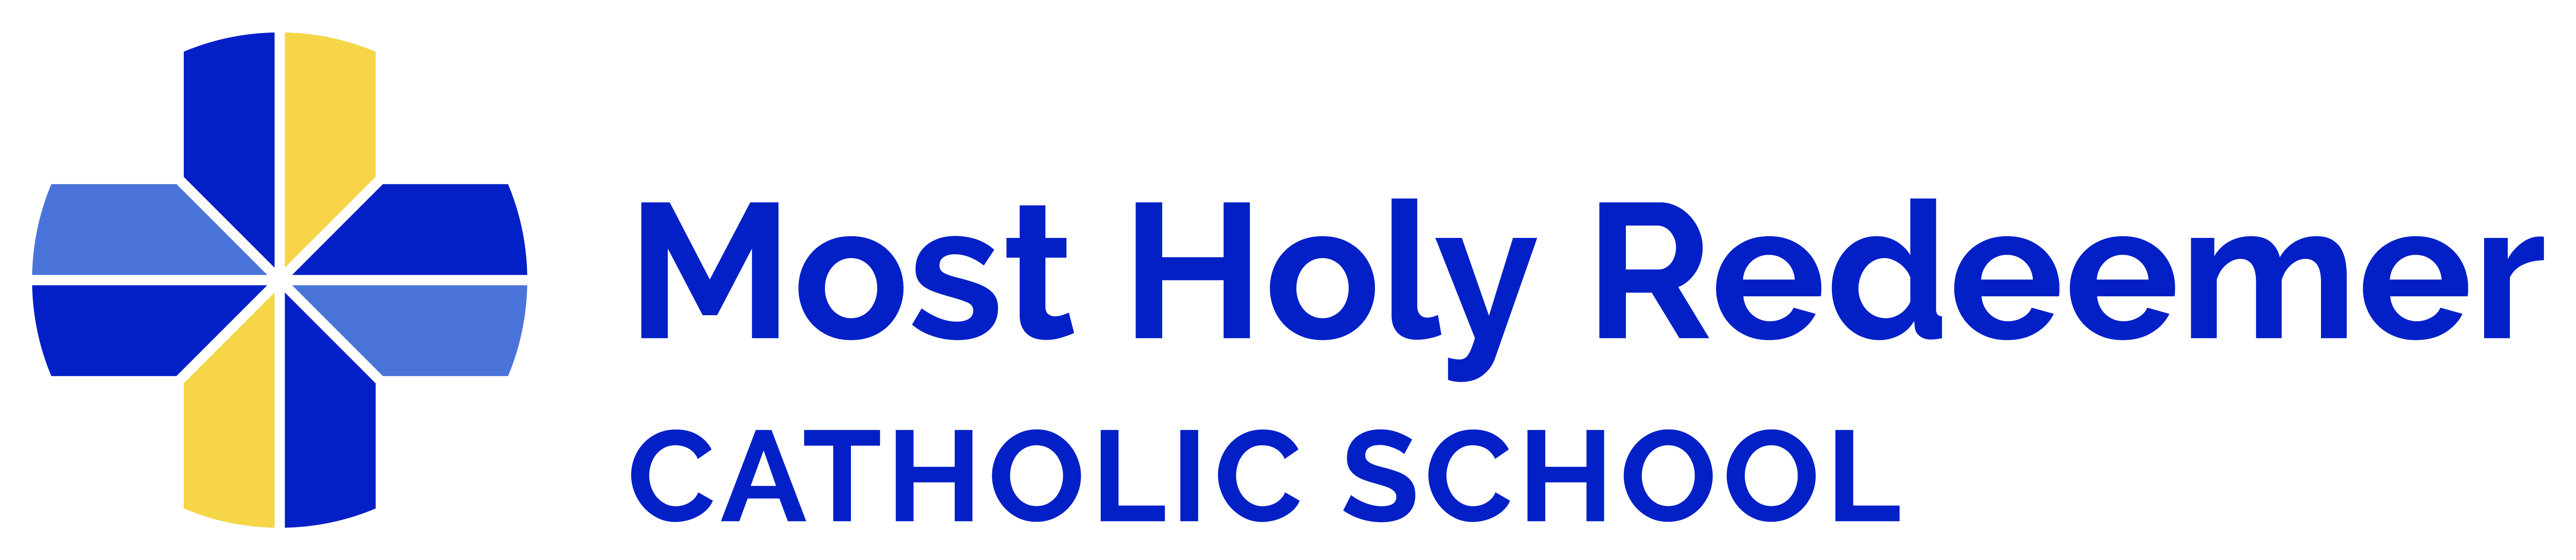 Most Holy Redeemer